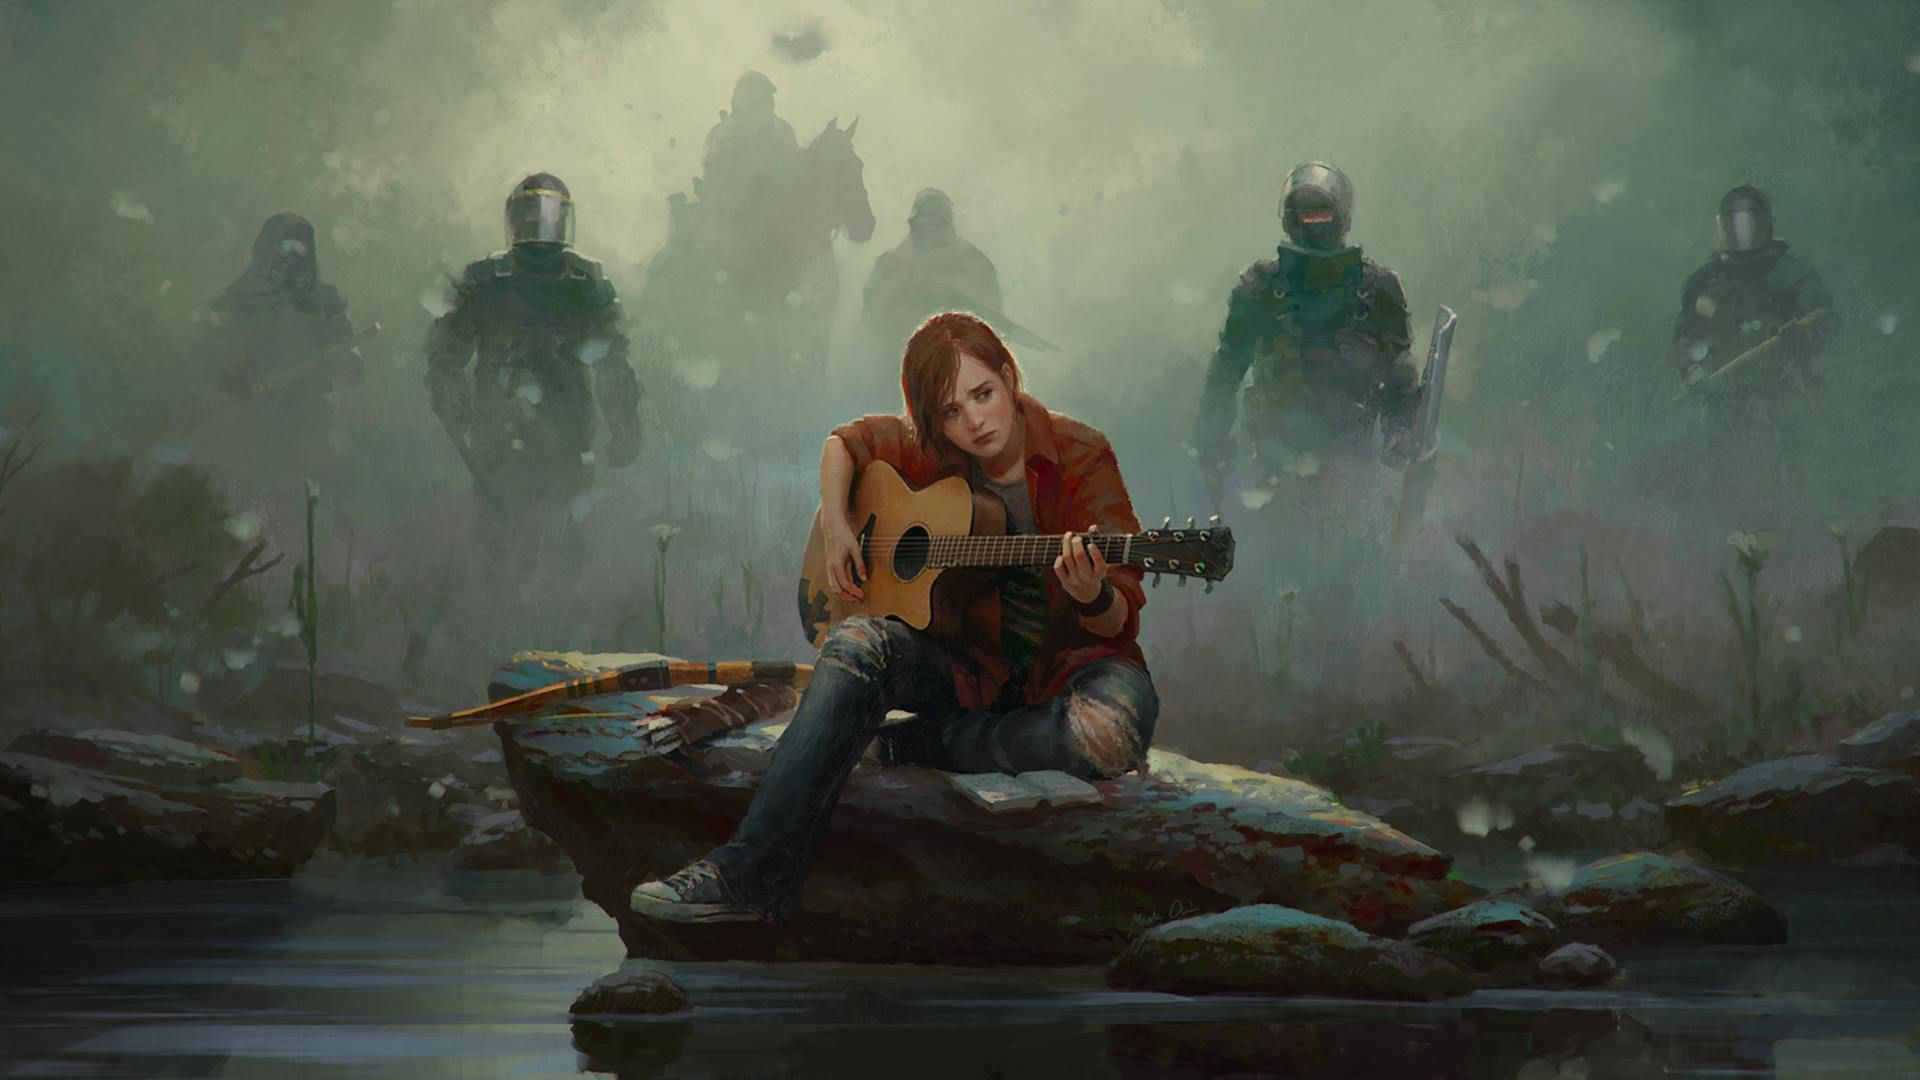 Kojima Productions Fans On Twitter The Last Of Us Concept Art Kojima Productions